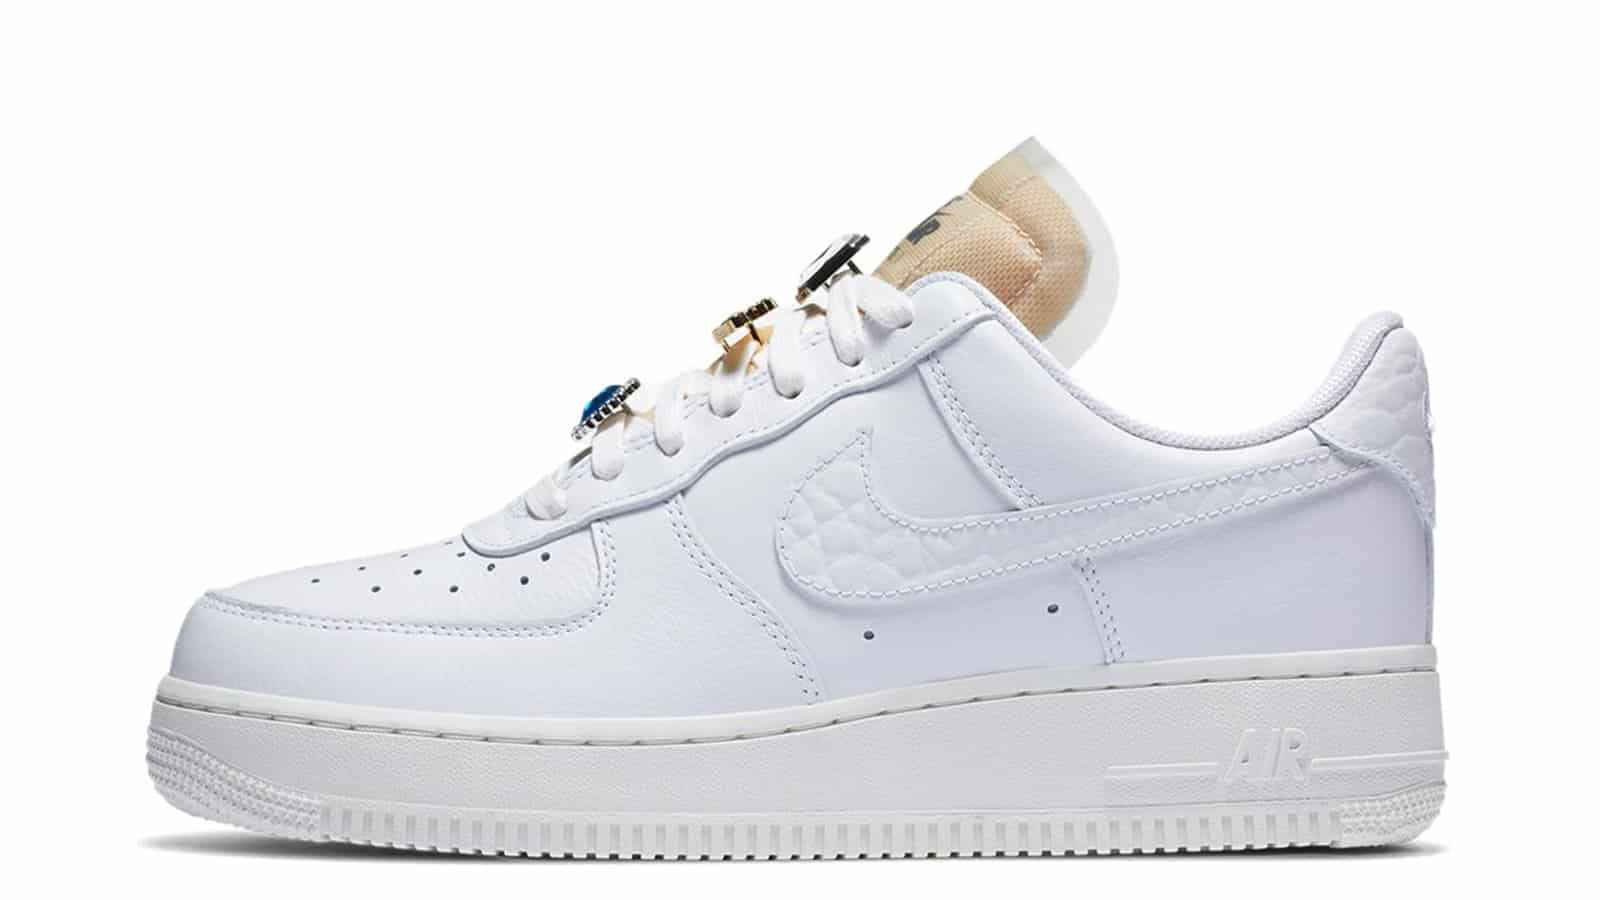 Nike Air Force 1 Low Bling CZ8101-100